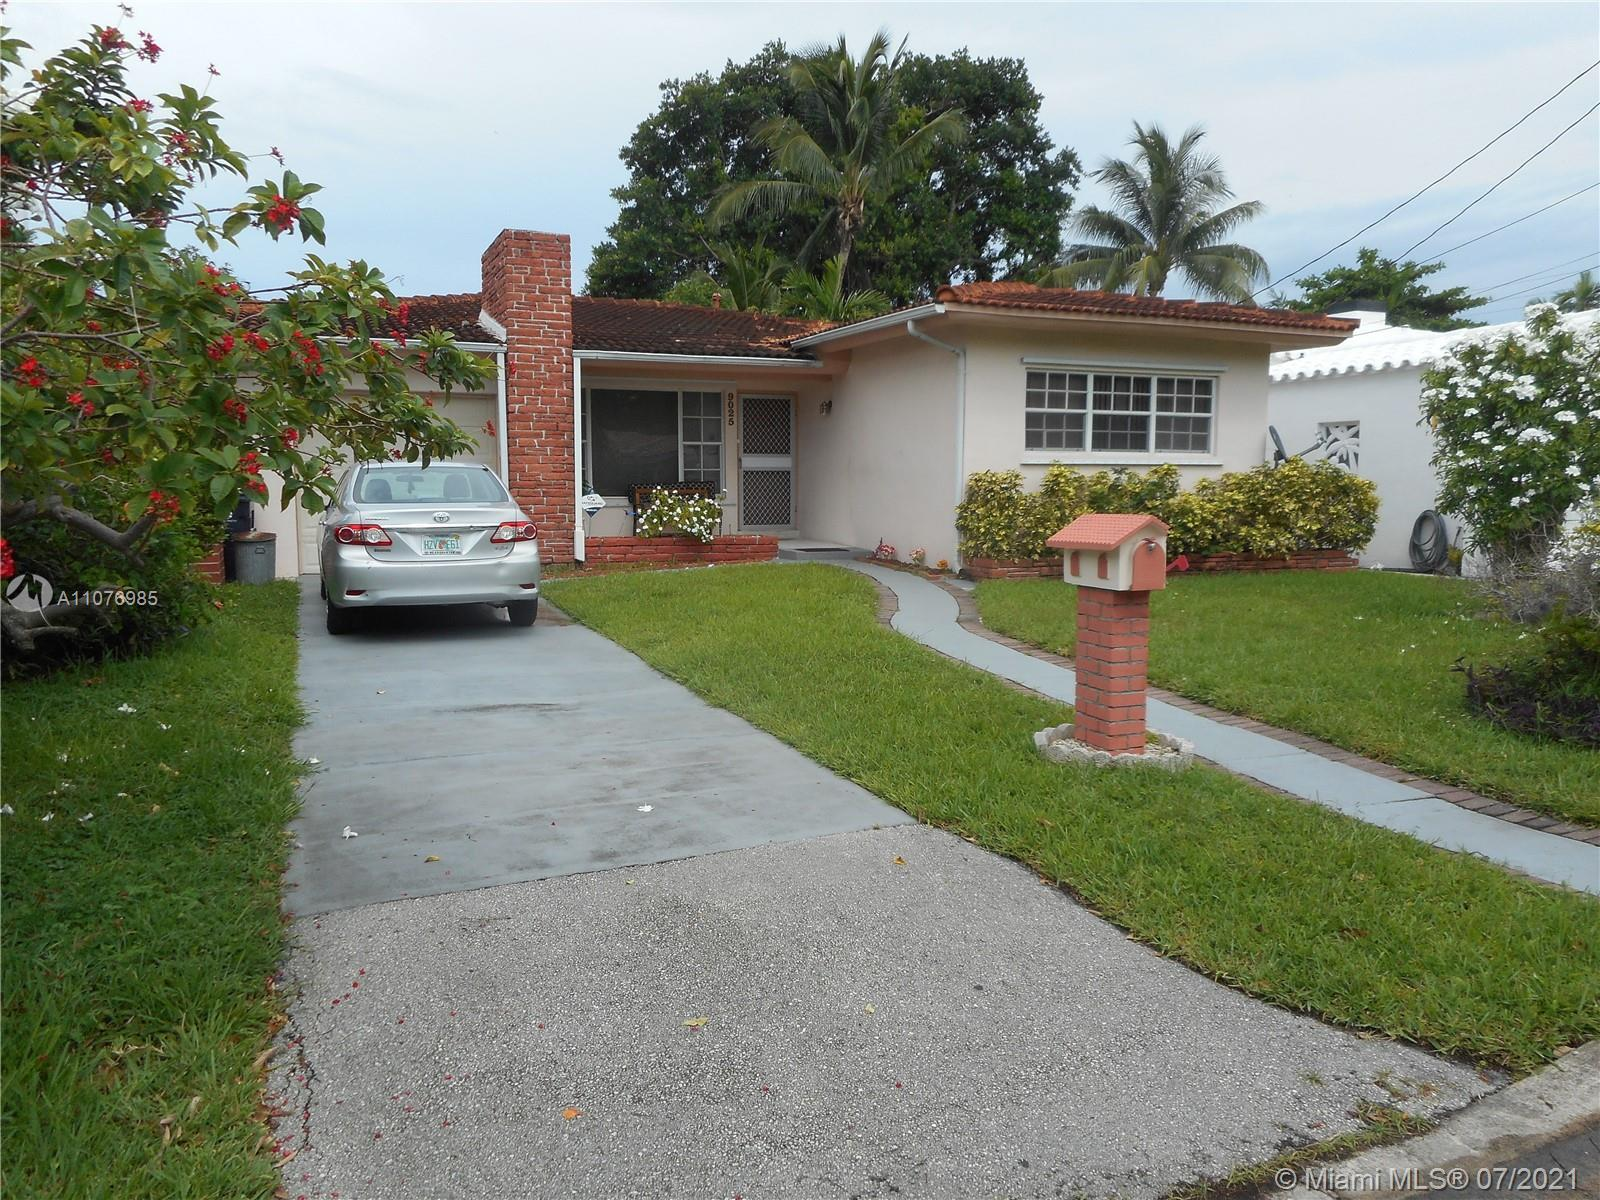 Three Bedroom 2 Bath with Garage. One of the best streets in Surfside right across from the park and